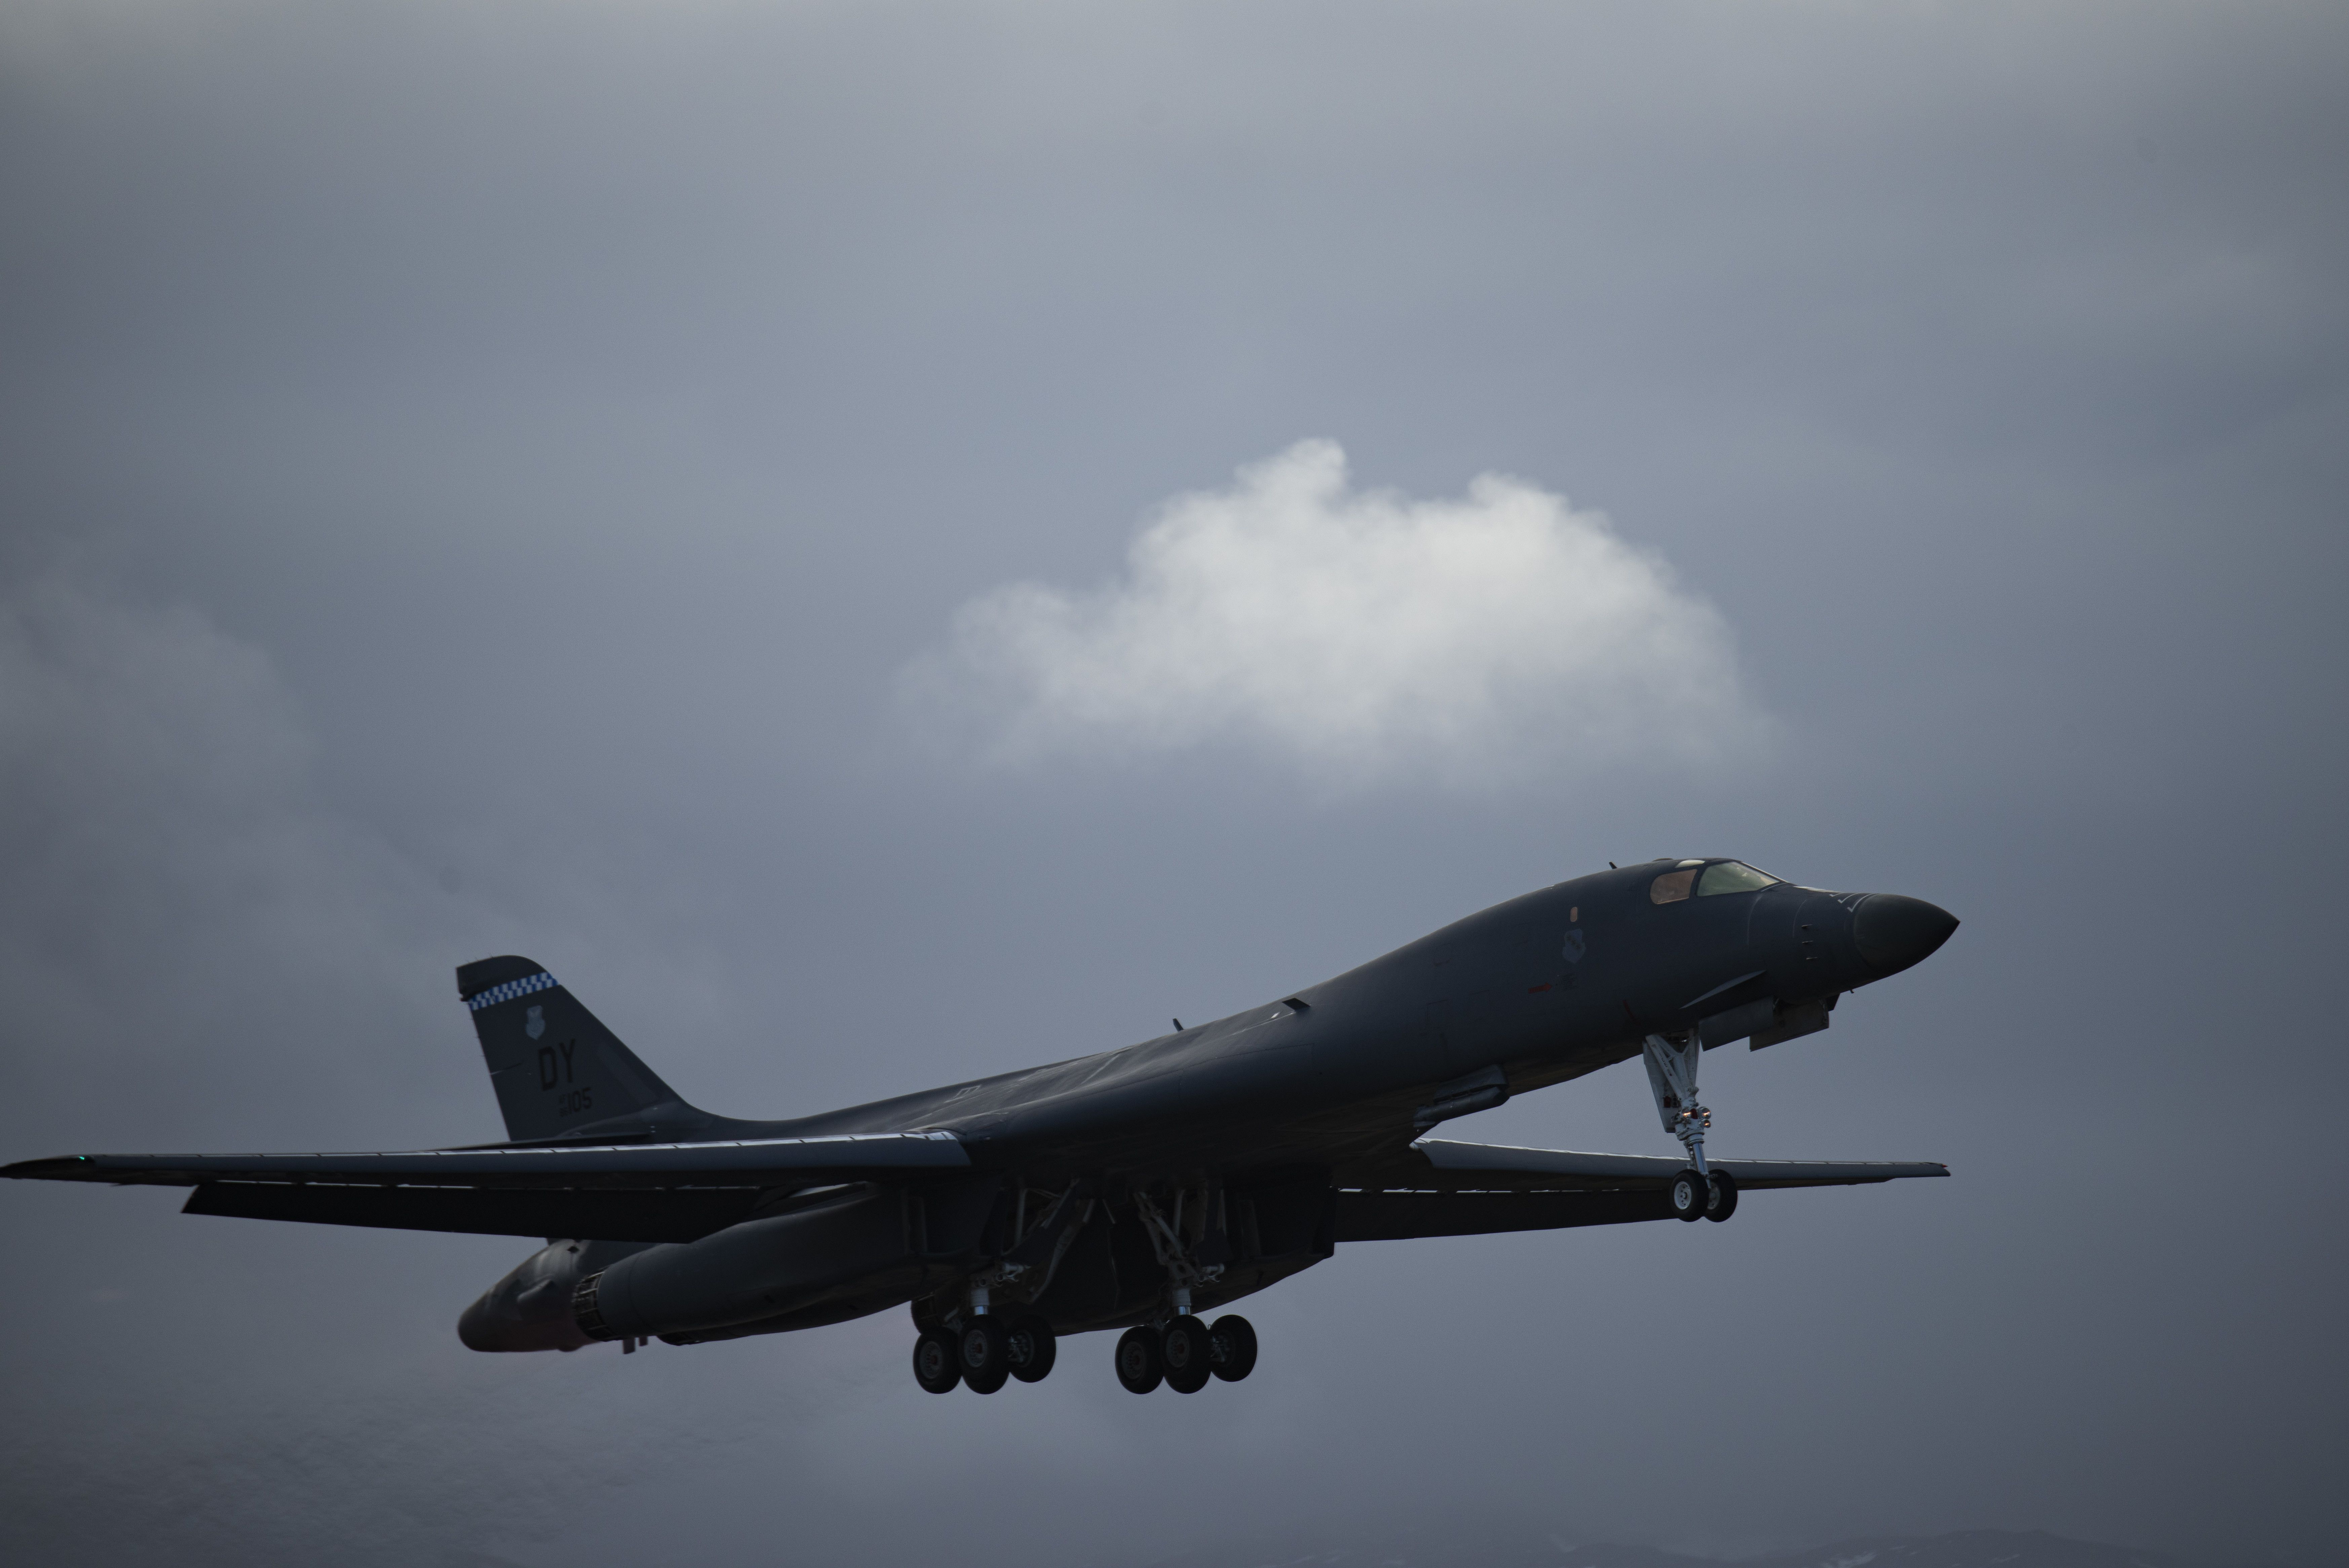 B-1B Lancers conduct first Bomber Task Force mission from Norway